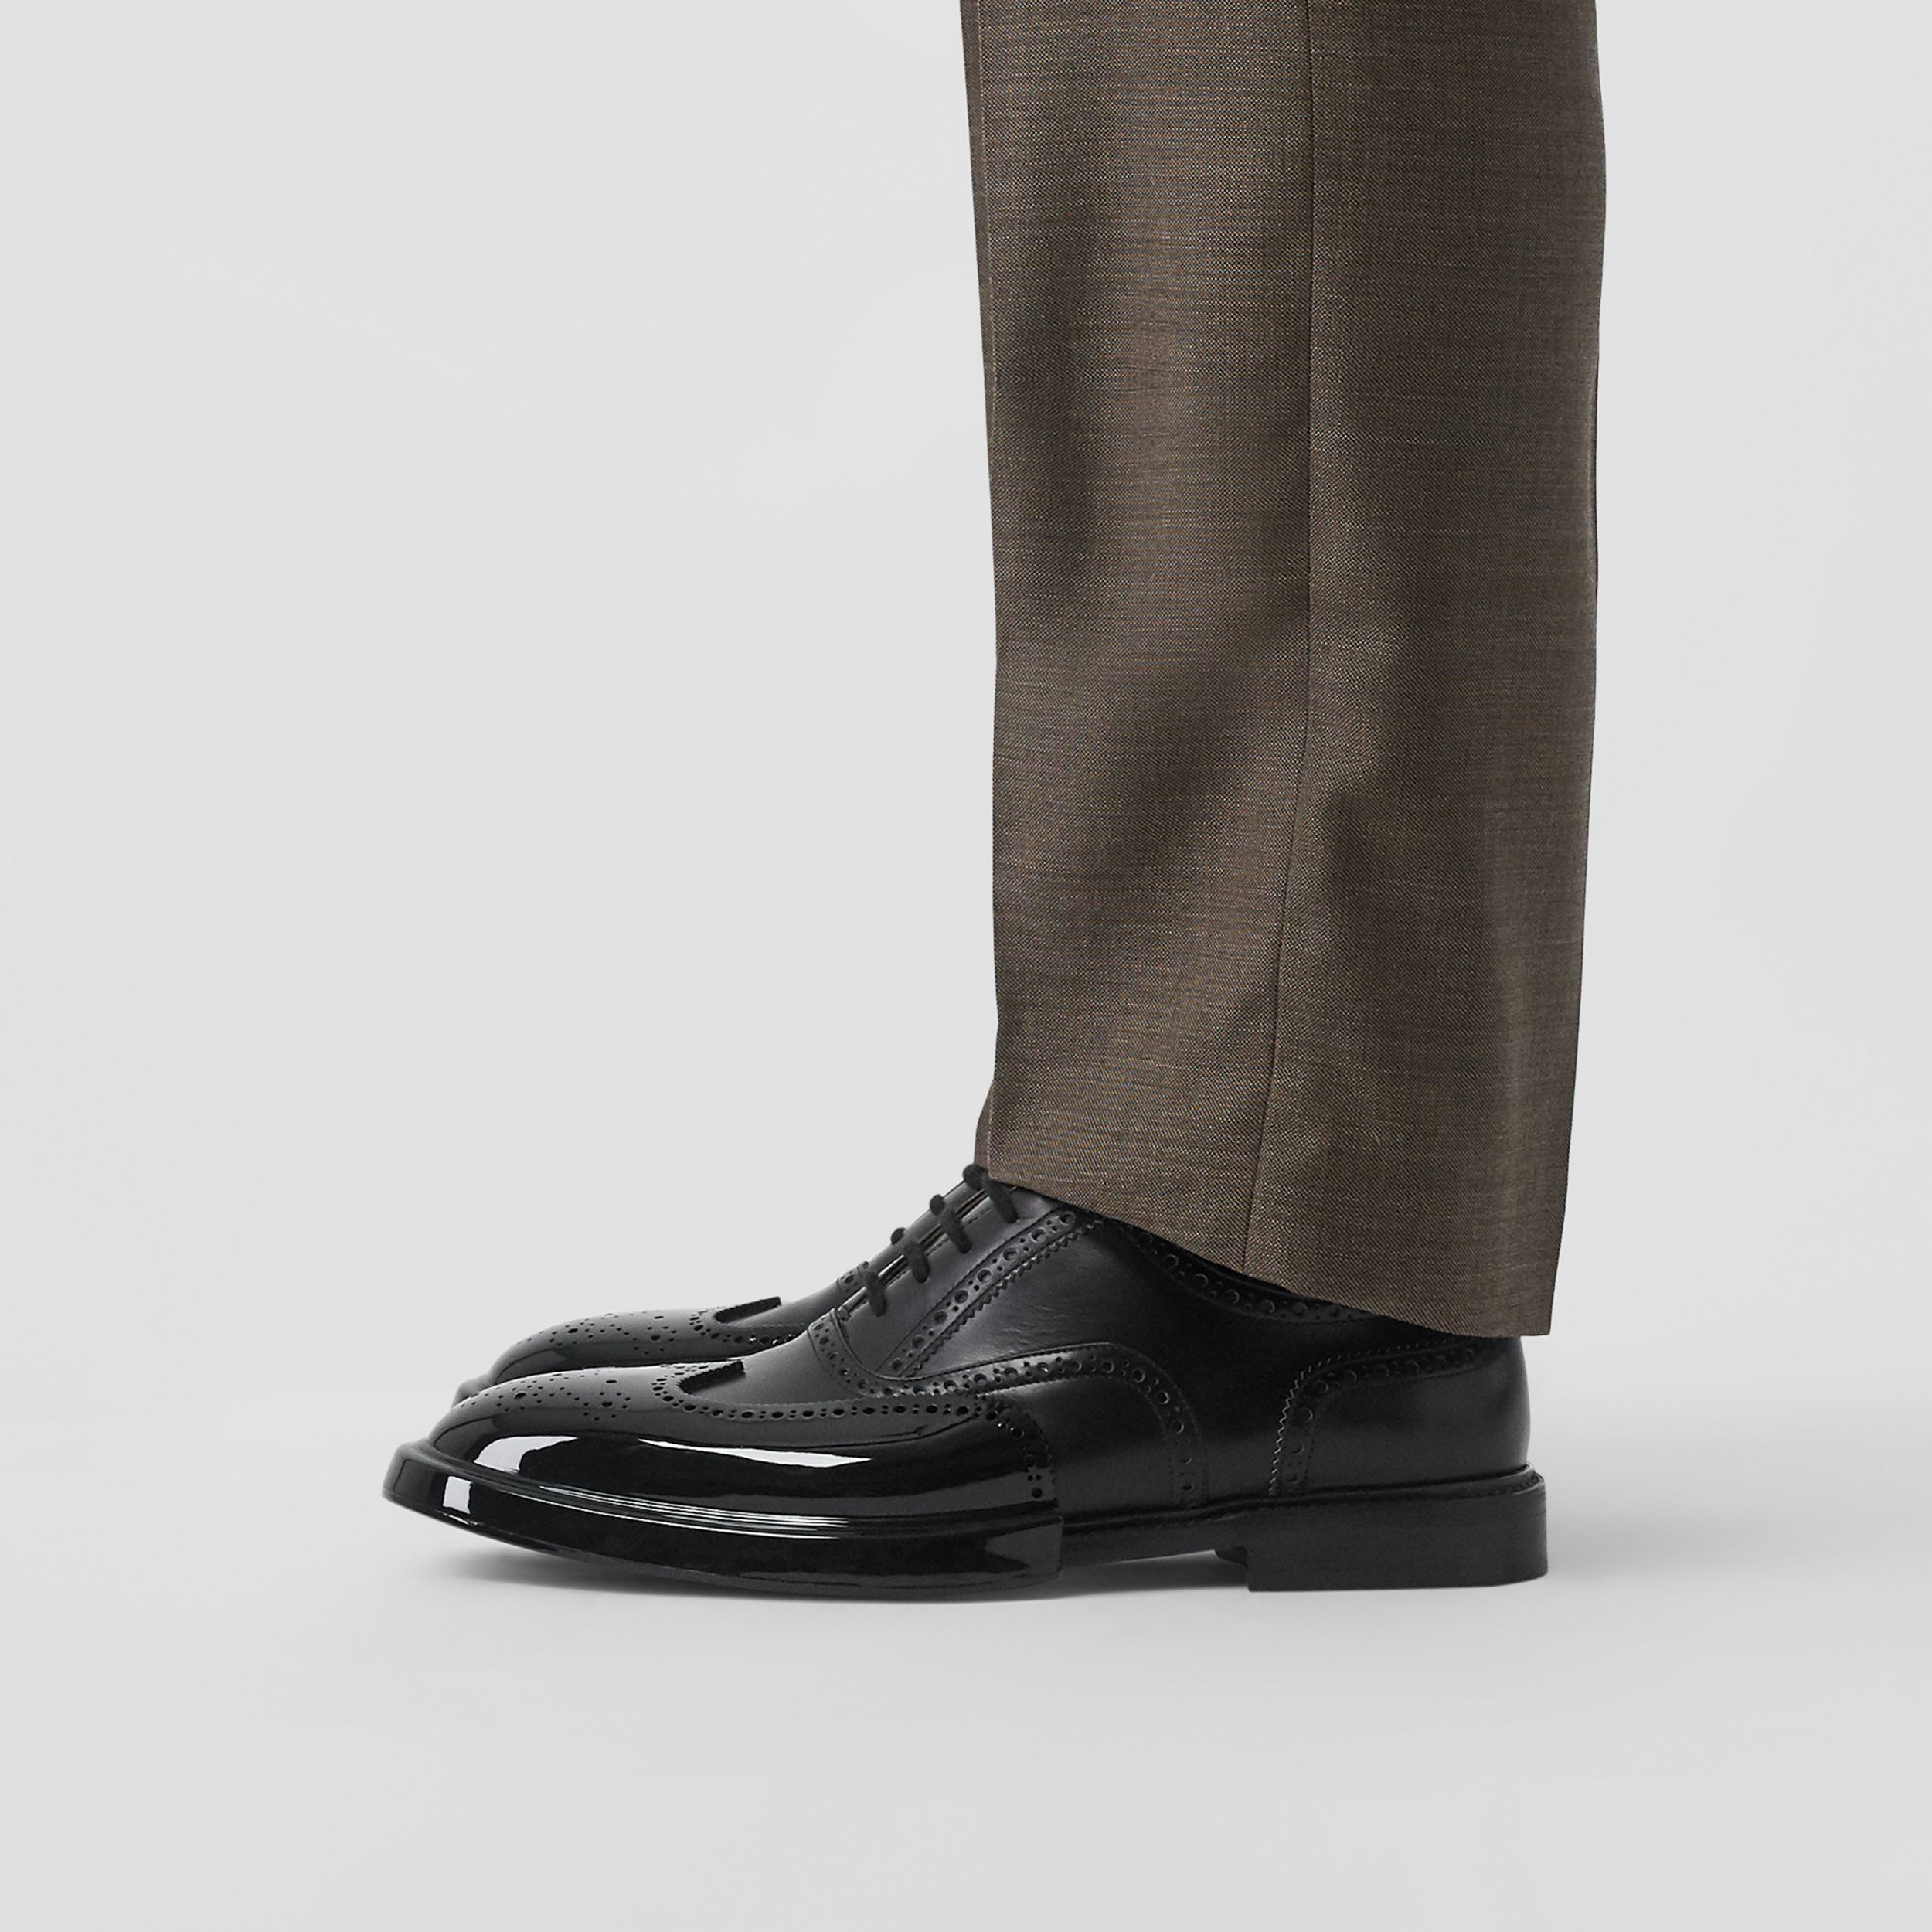 Toe Cap Detail Leather Oxford Brogues in Black - Men | Burberry - 3